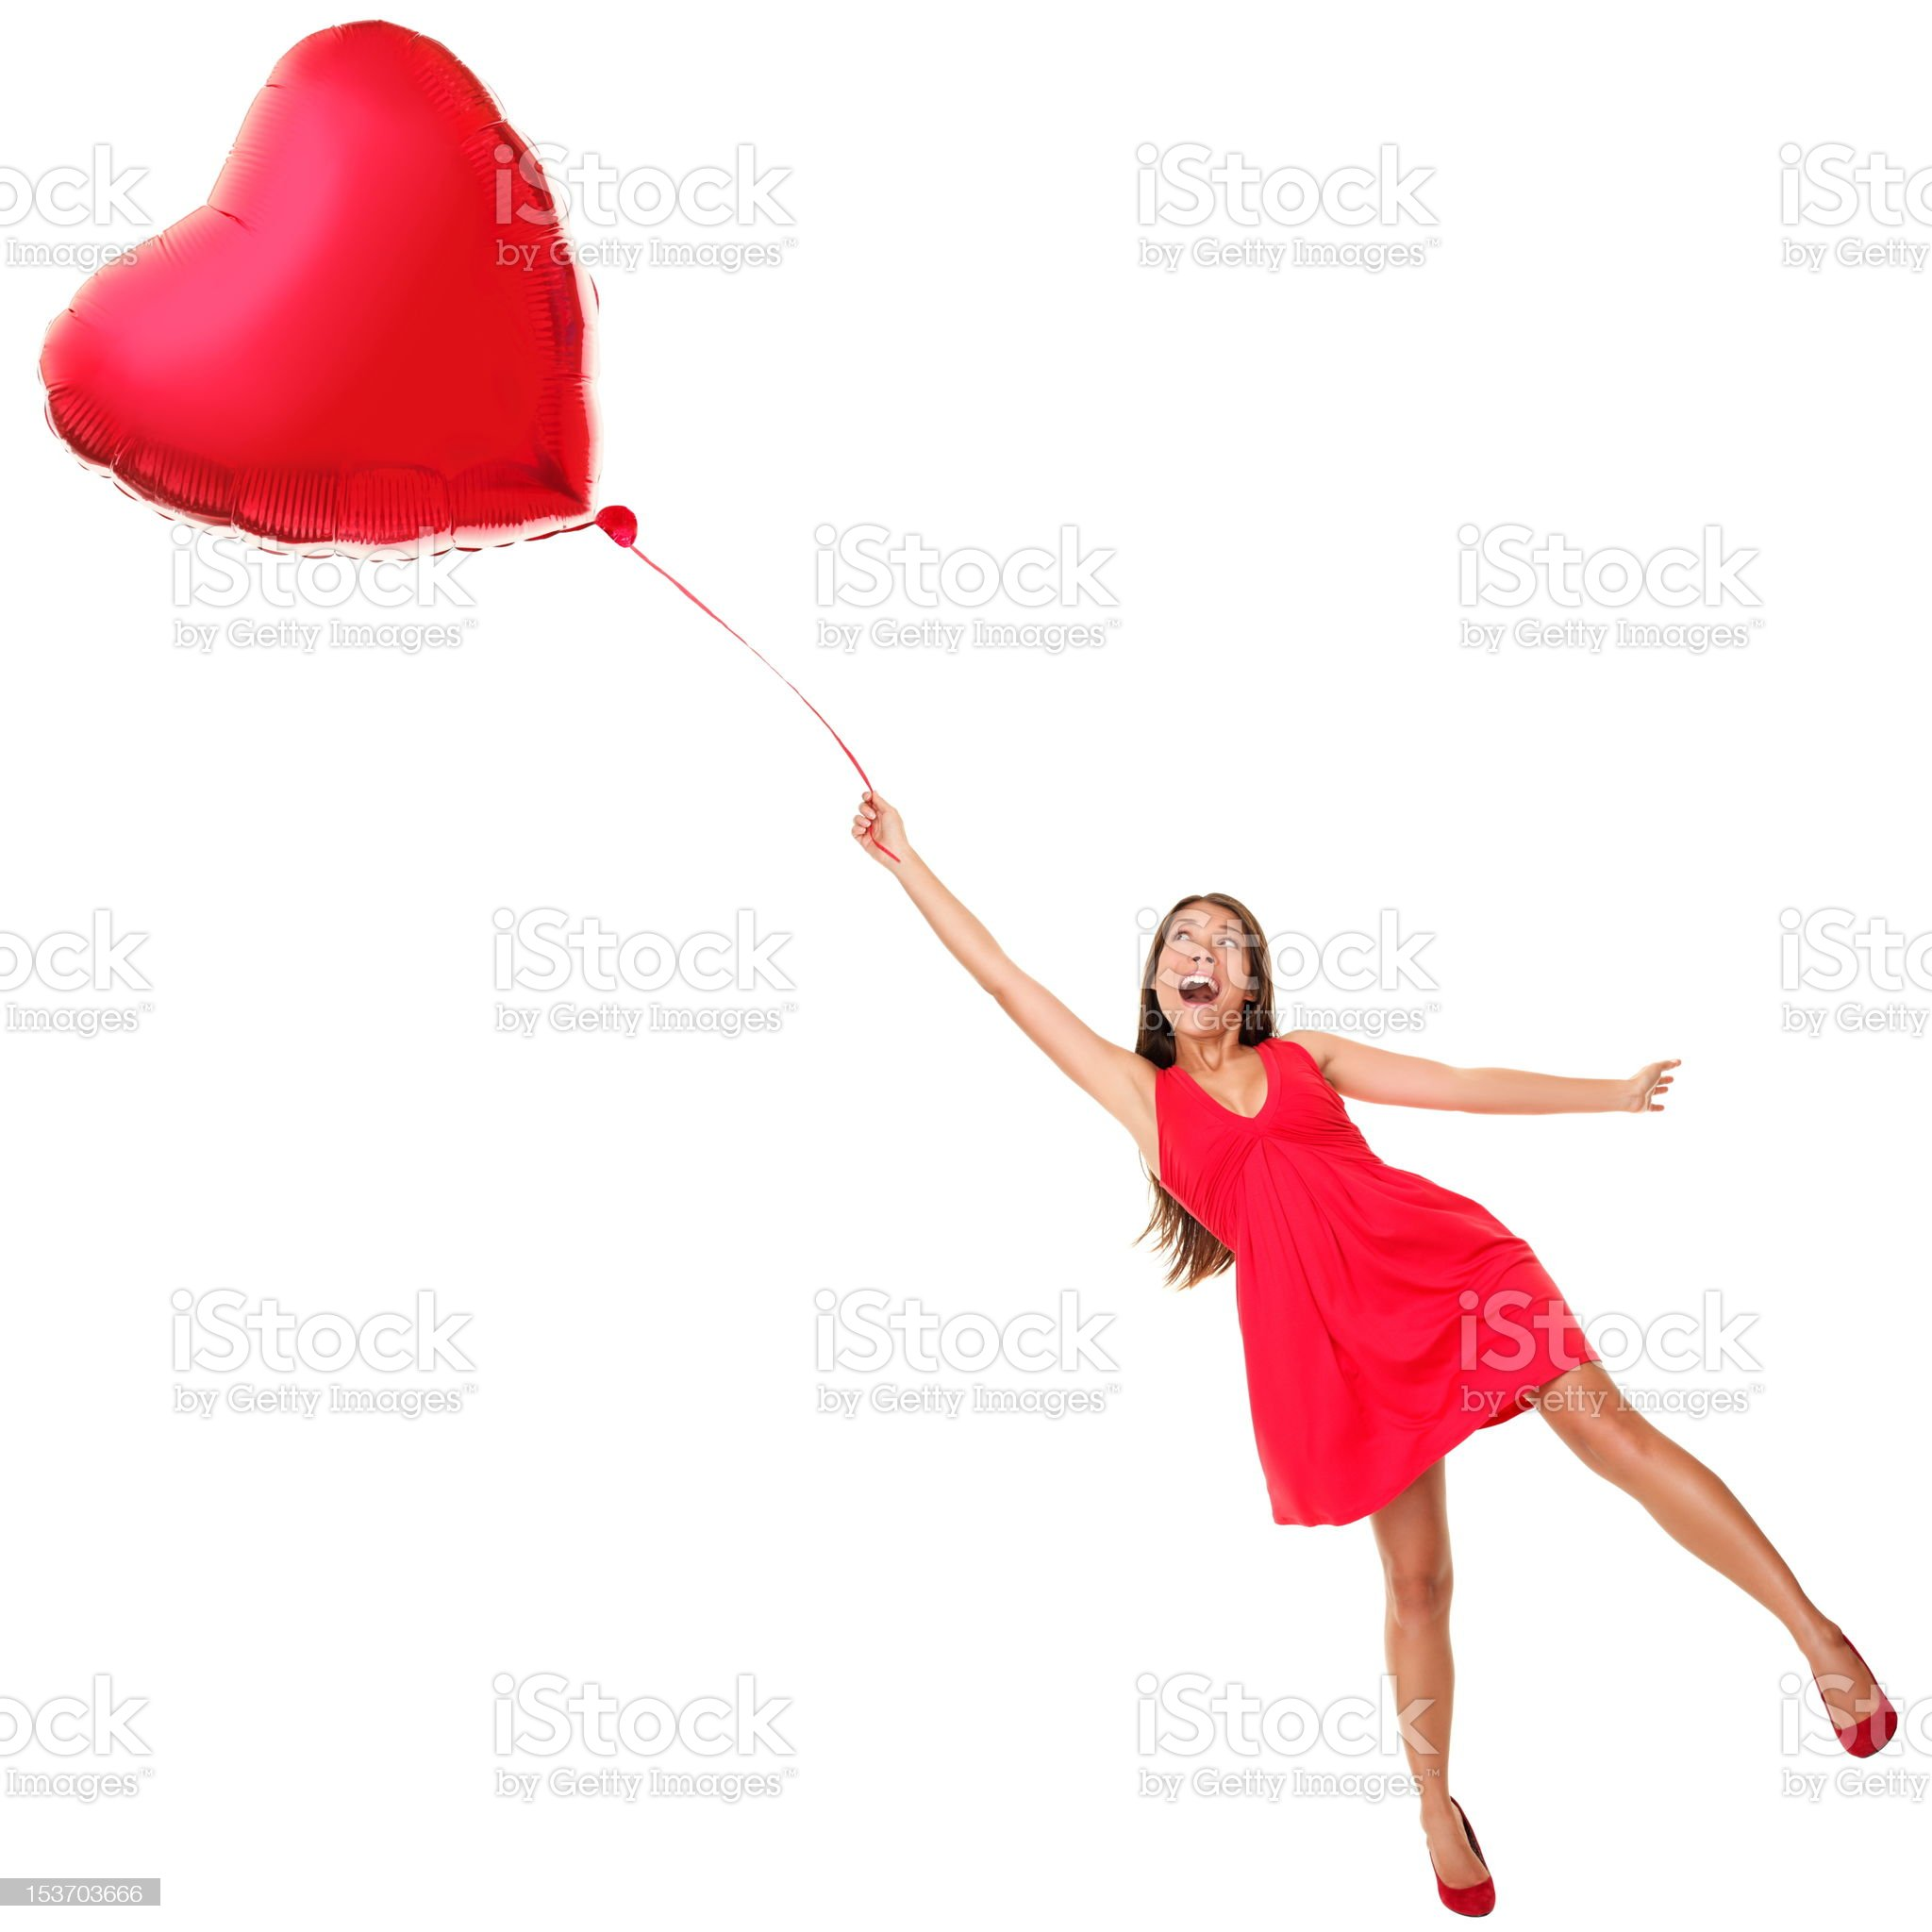 Valentines day woman flying with heart balloon royalty-free stock photo